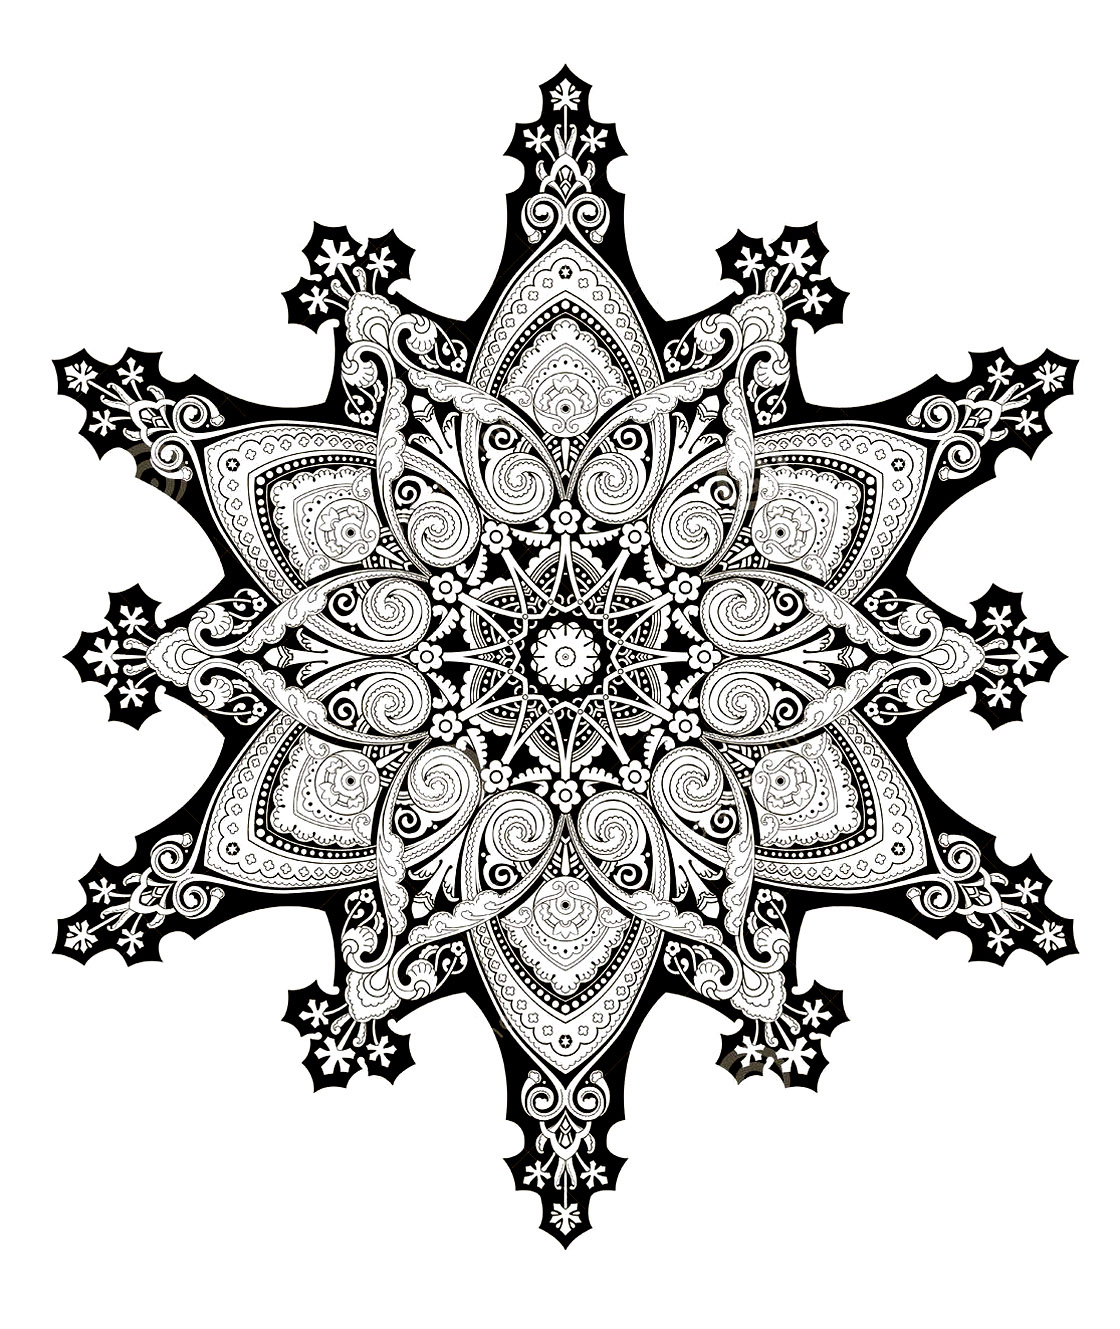 Oriental mandala 2 - Image with : Symmetry